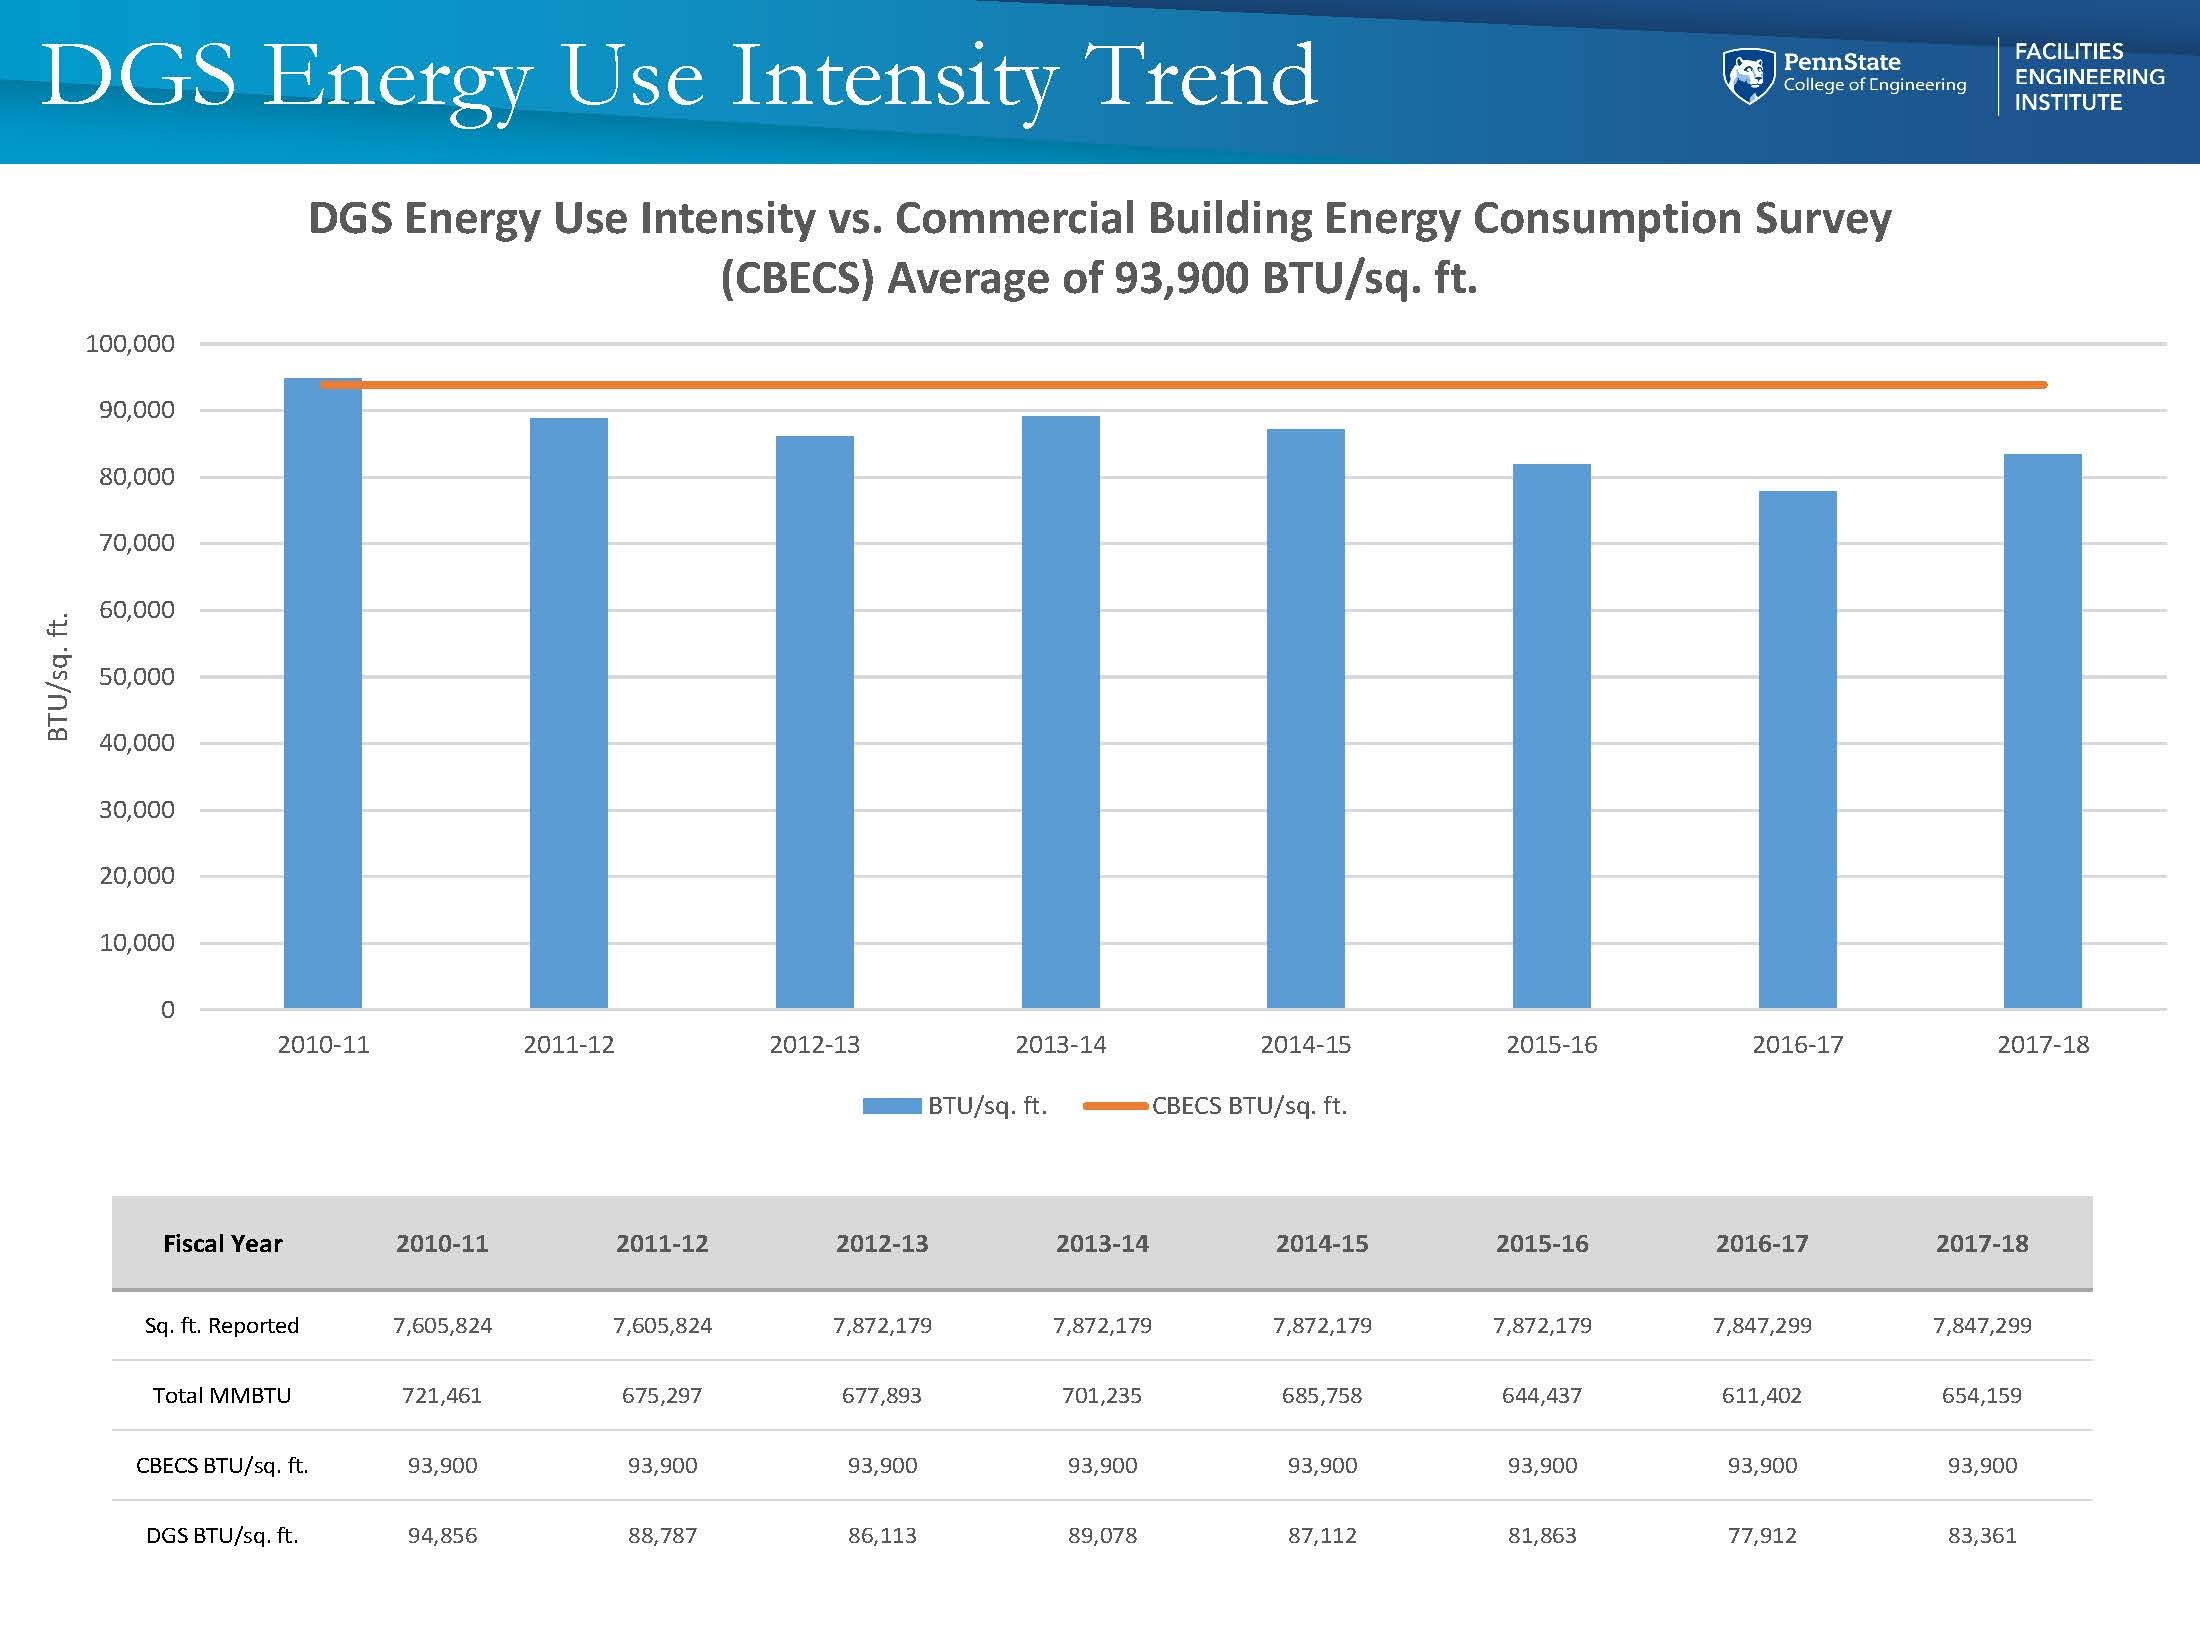 Energy - DGS Energy Usage Intensity Trend.jpg